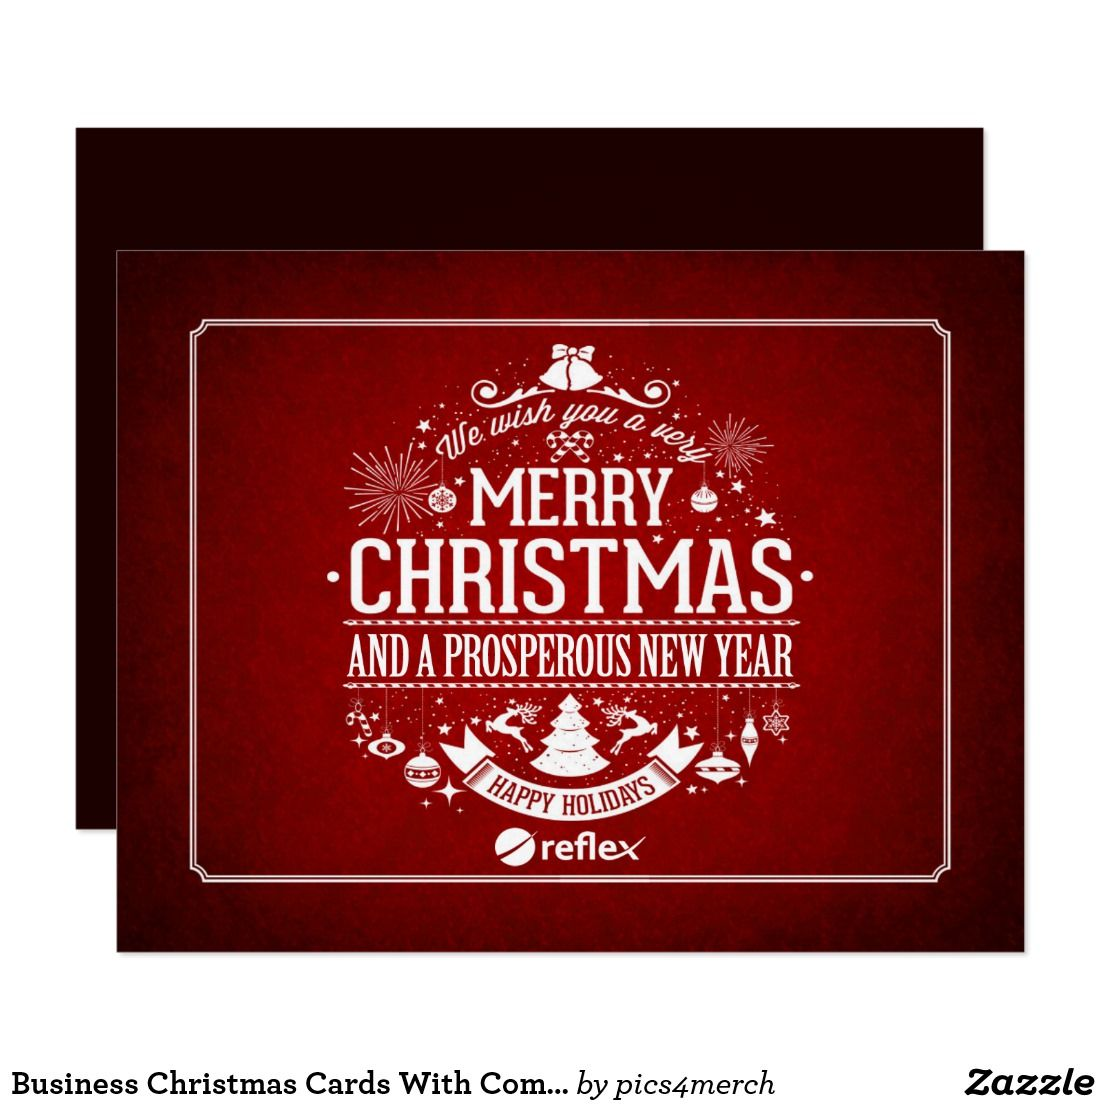 Business Christmas Cards With Company Logo Personalized Corporate Greetingcards Red Company Christmas Cards Business Christmas Cards Business Holiday Cards